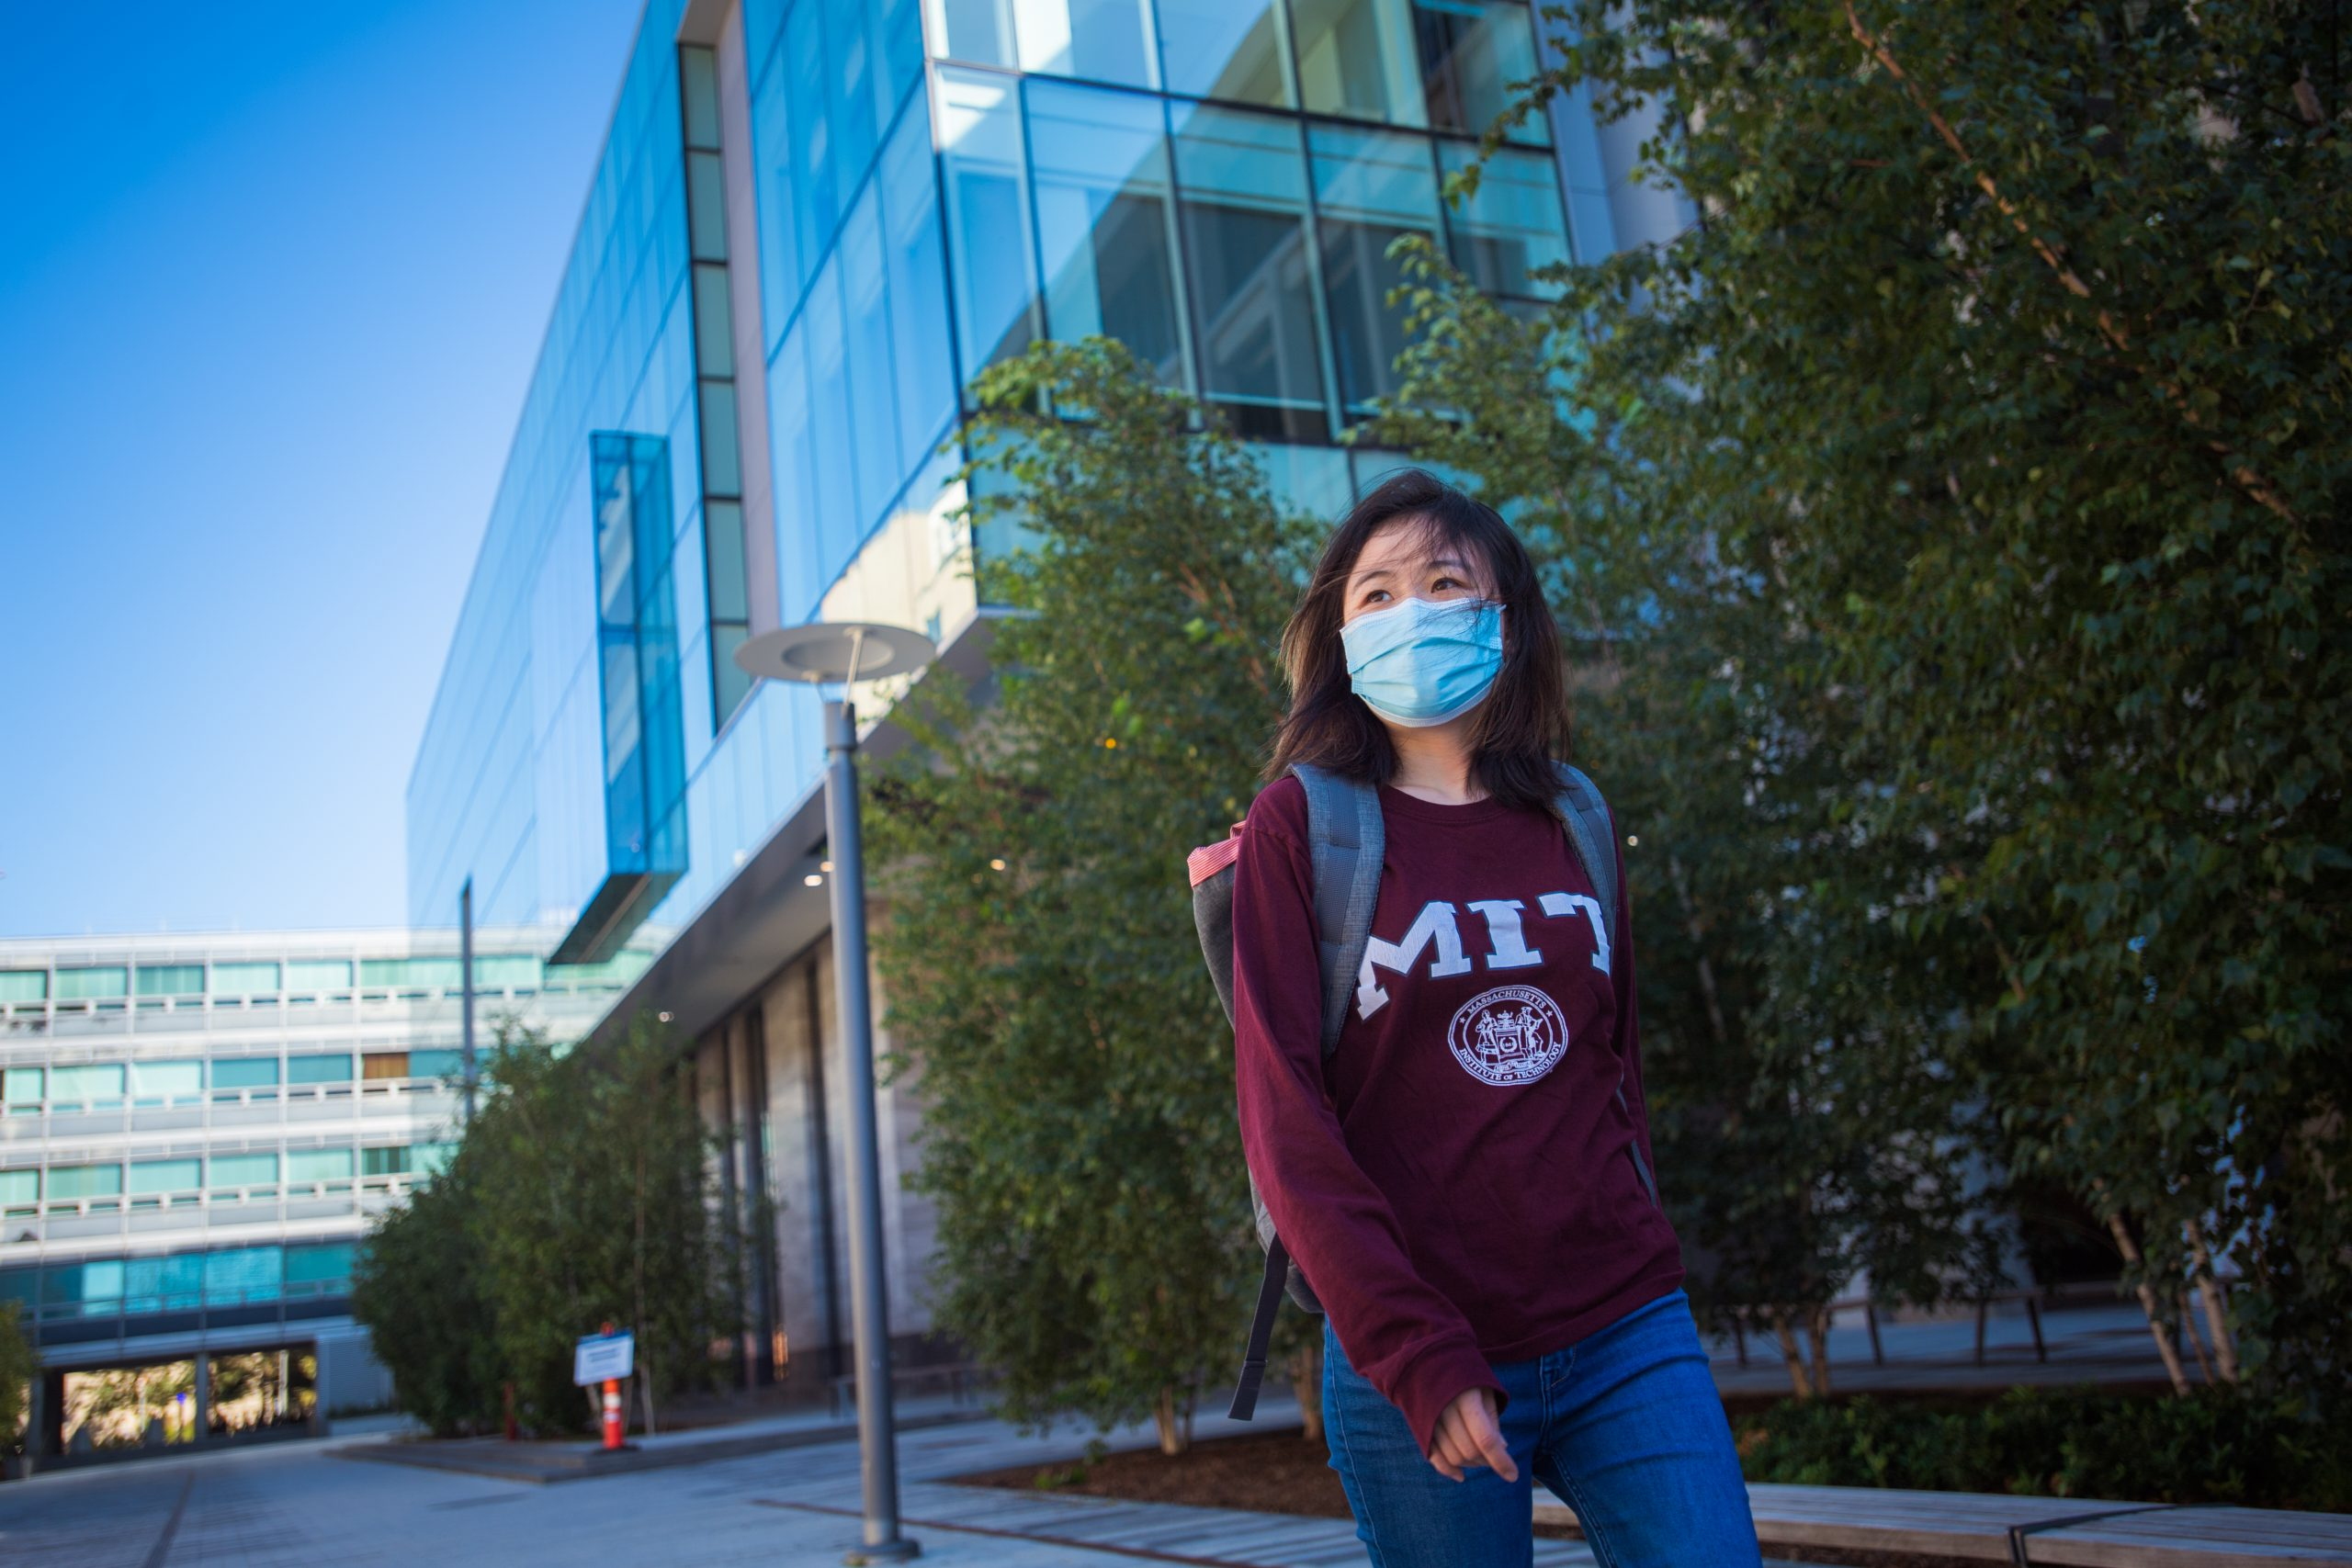 A masked student in an MIT sweatshirt walking on MIT campus